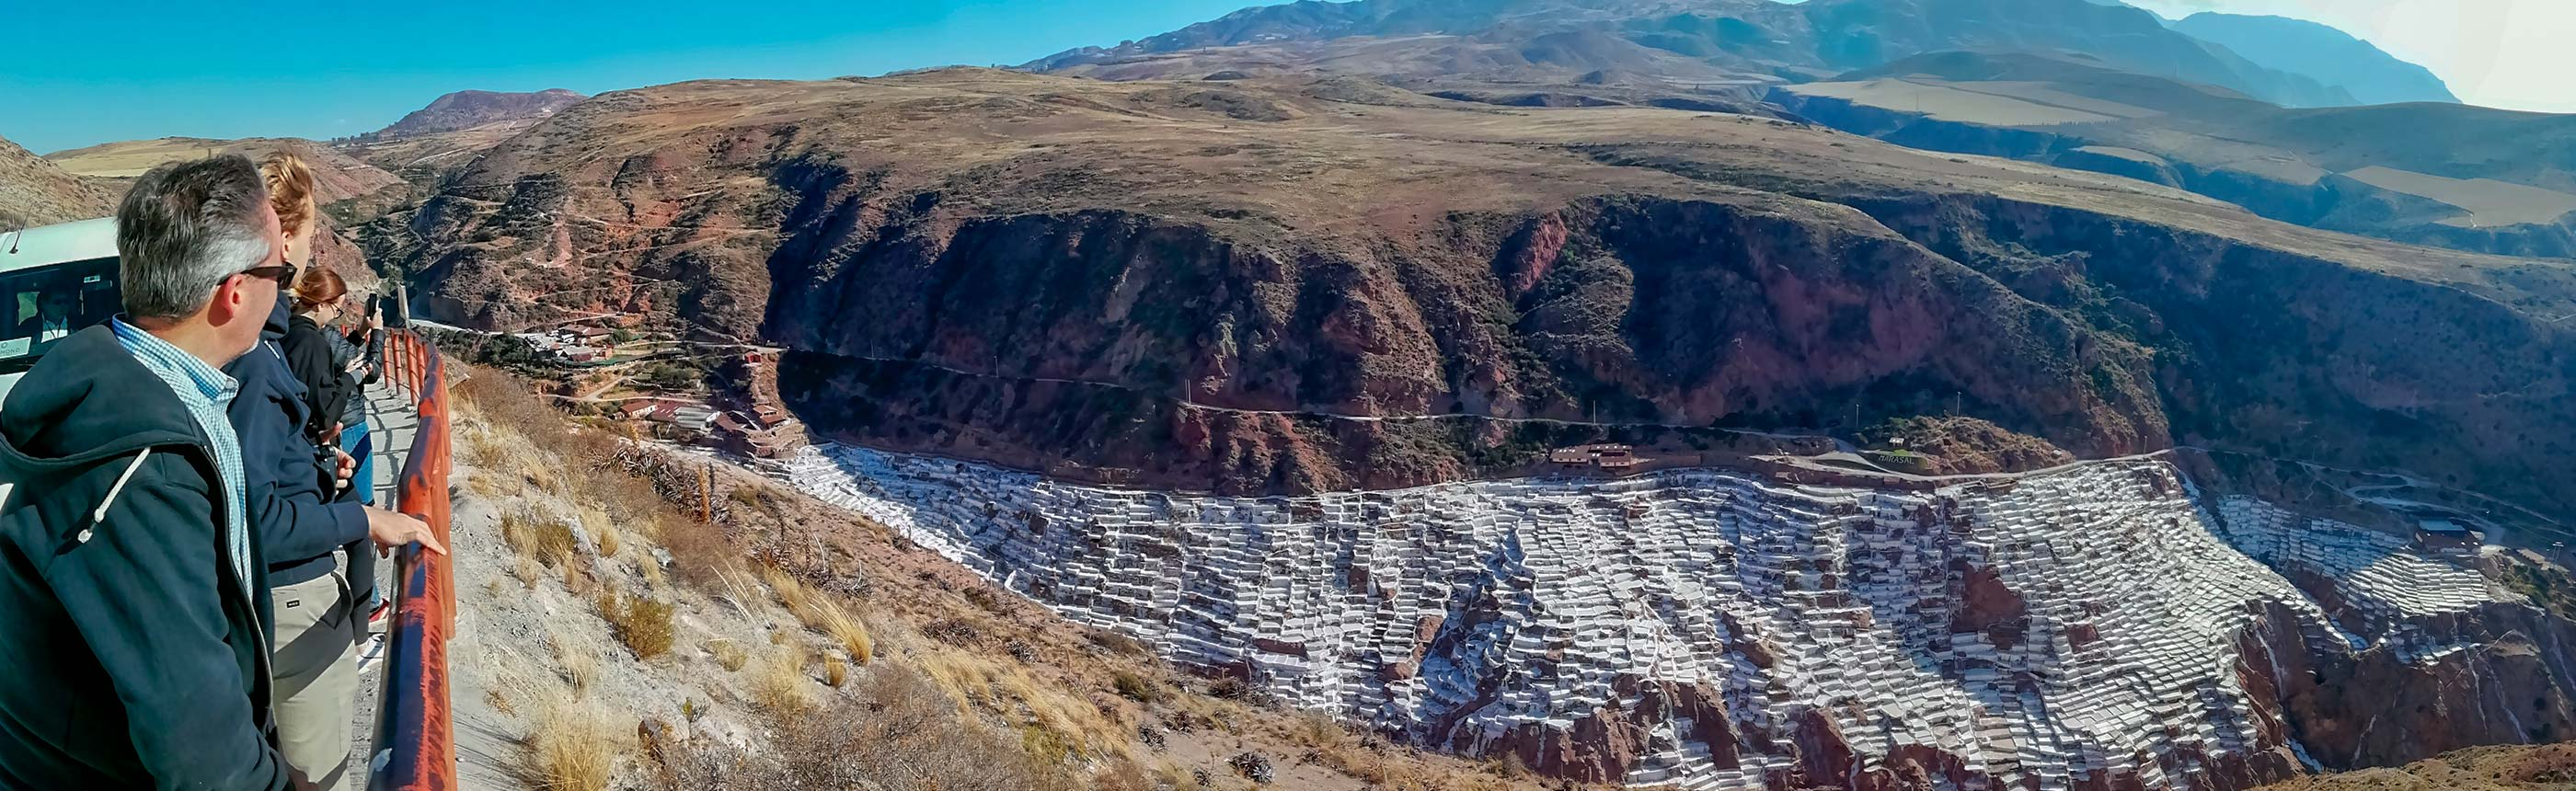 Visiting the Maras Salt Mines and enjoying beautiful panoramic views of the Salt Mines in Cusco